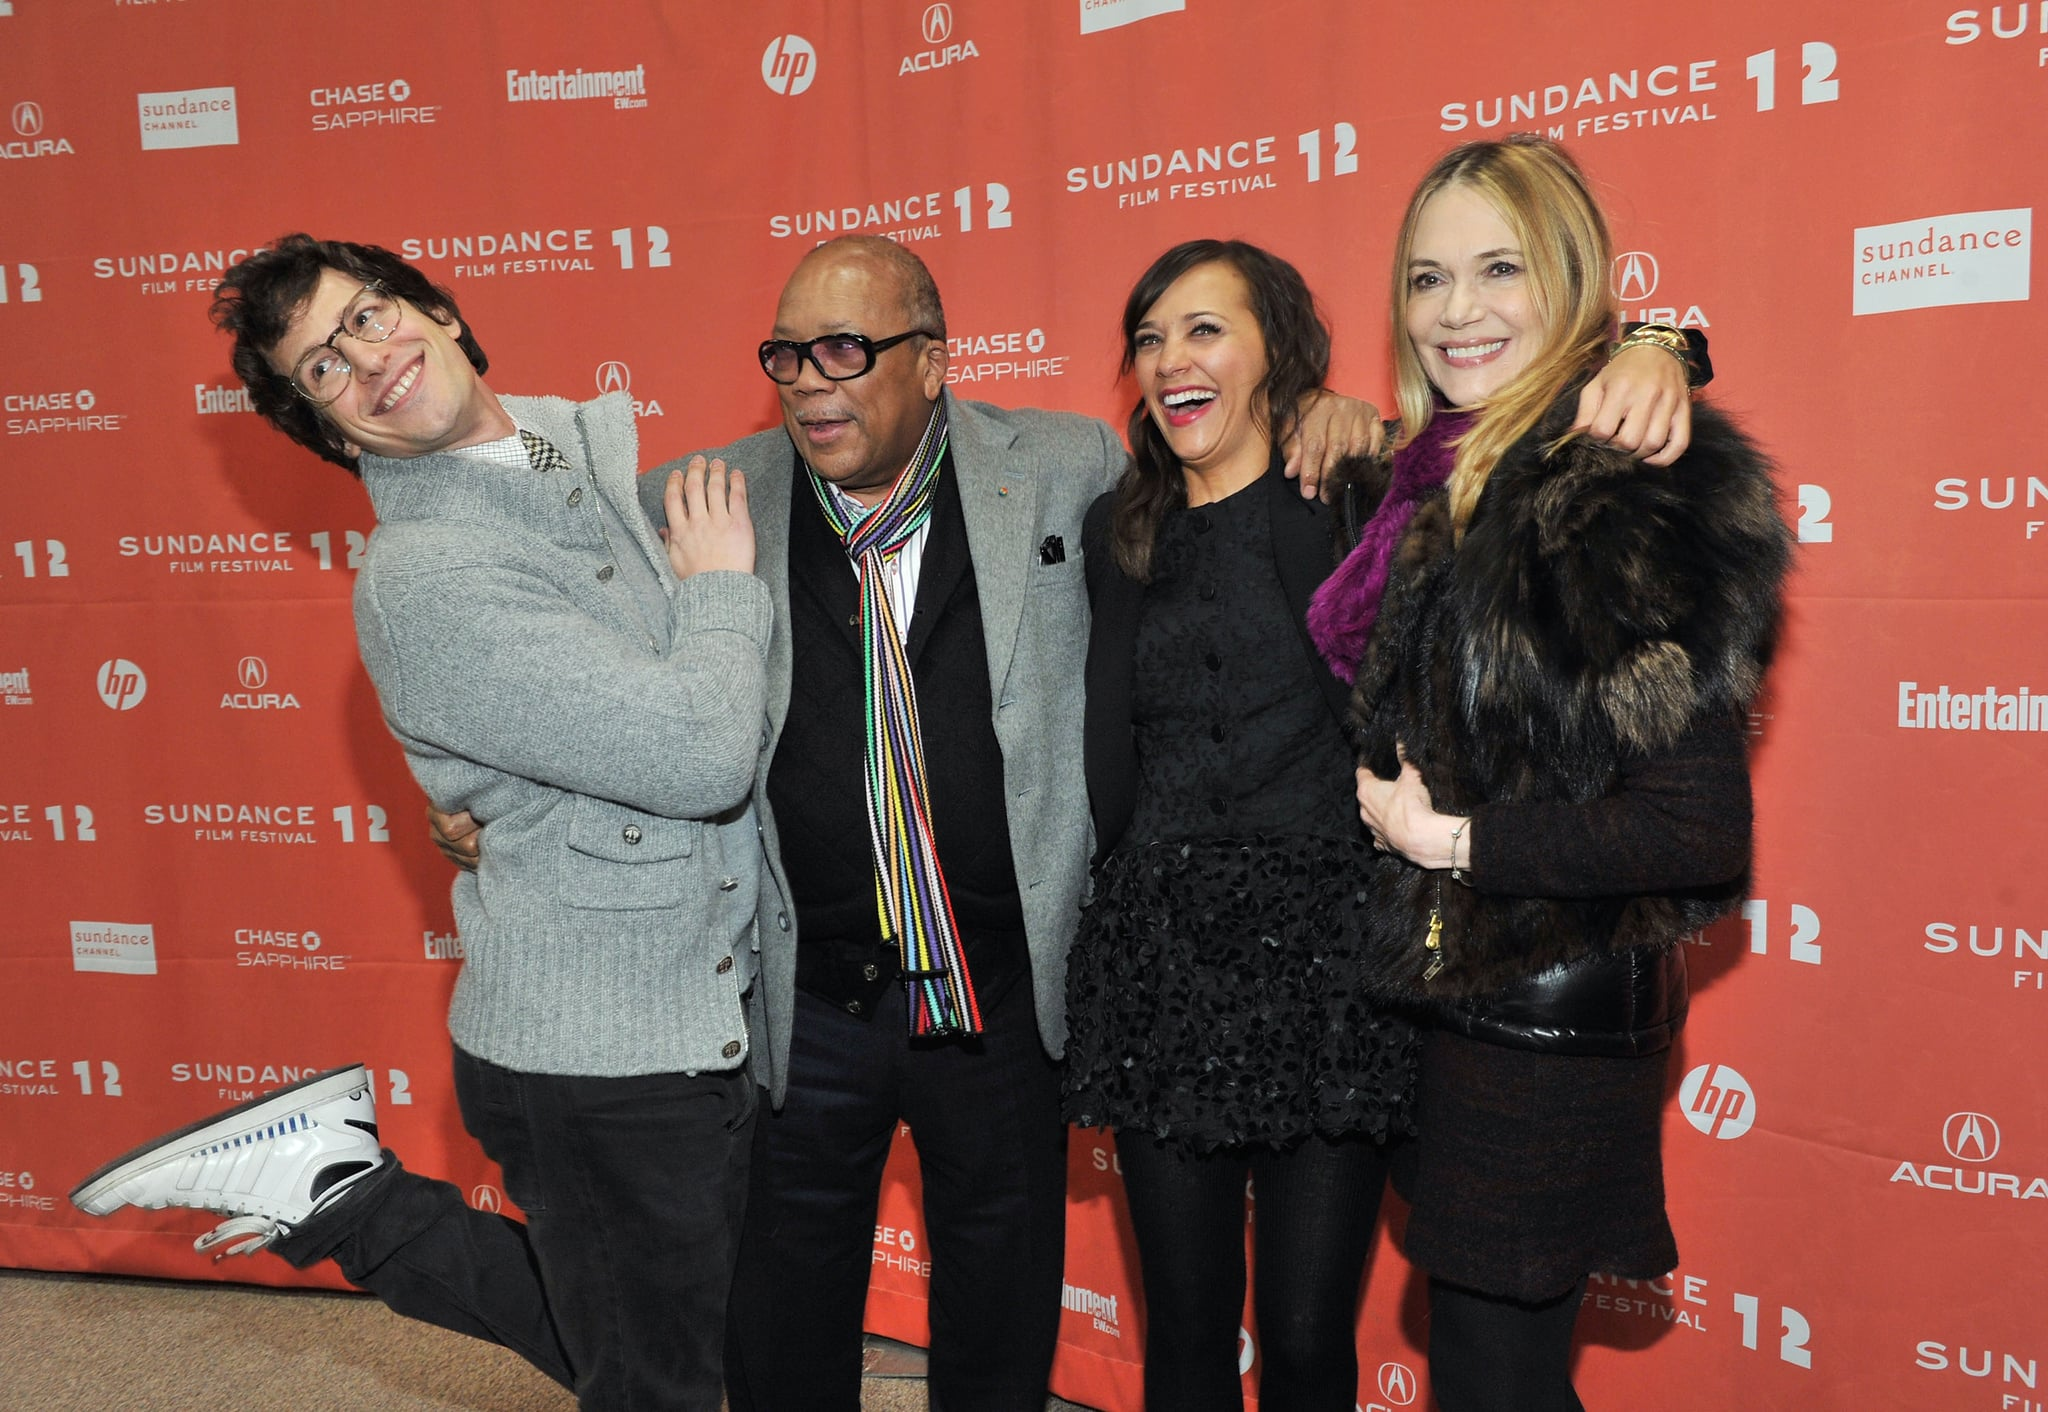 Andy Samberg posed with Rashida Jones and her parents, Quincy Jones and Peggy Lipton, as they promoted Celeste and Jesse Forever at the 2012 Sundance Film Festival.